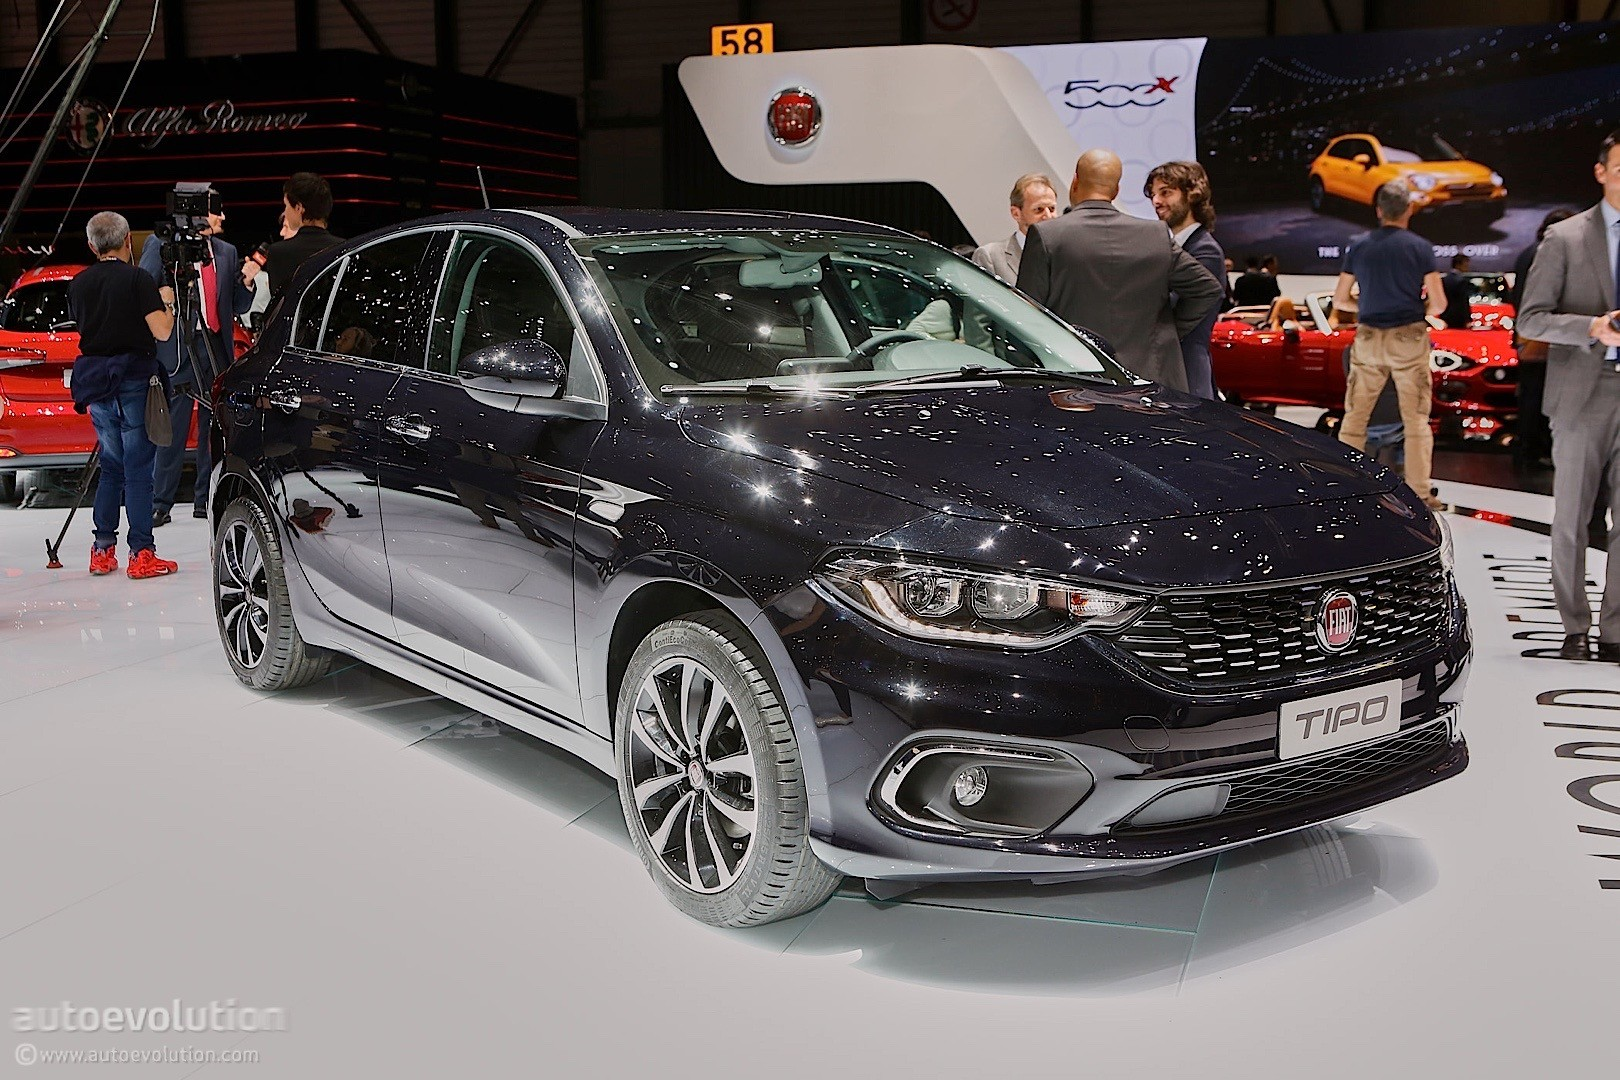 Fiat Tipo Hatchback Priced At In Italy Station Wagon At